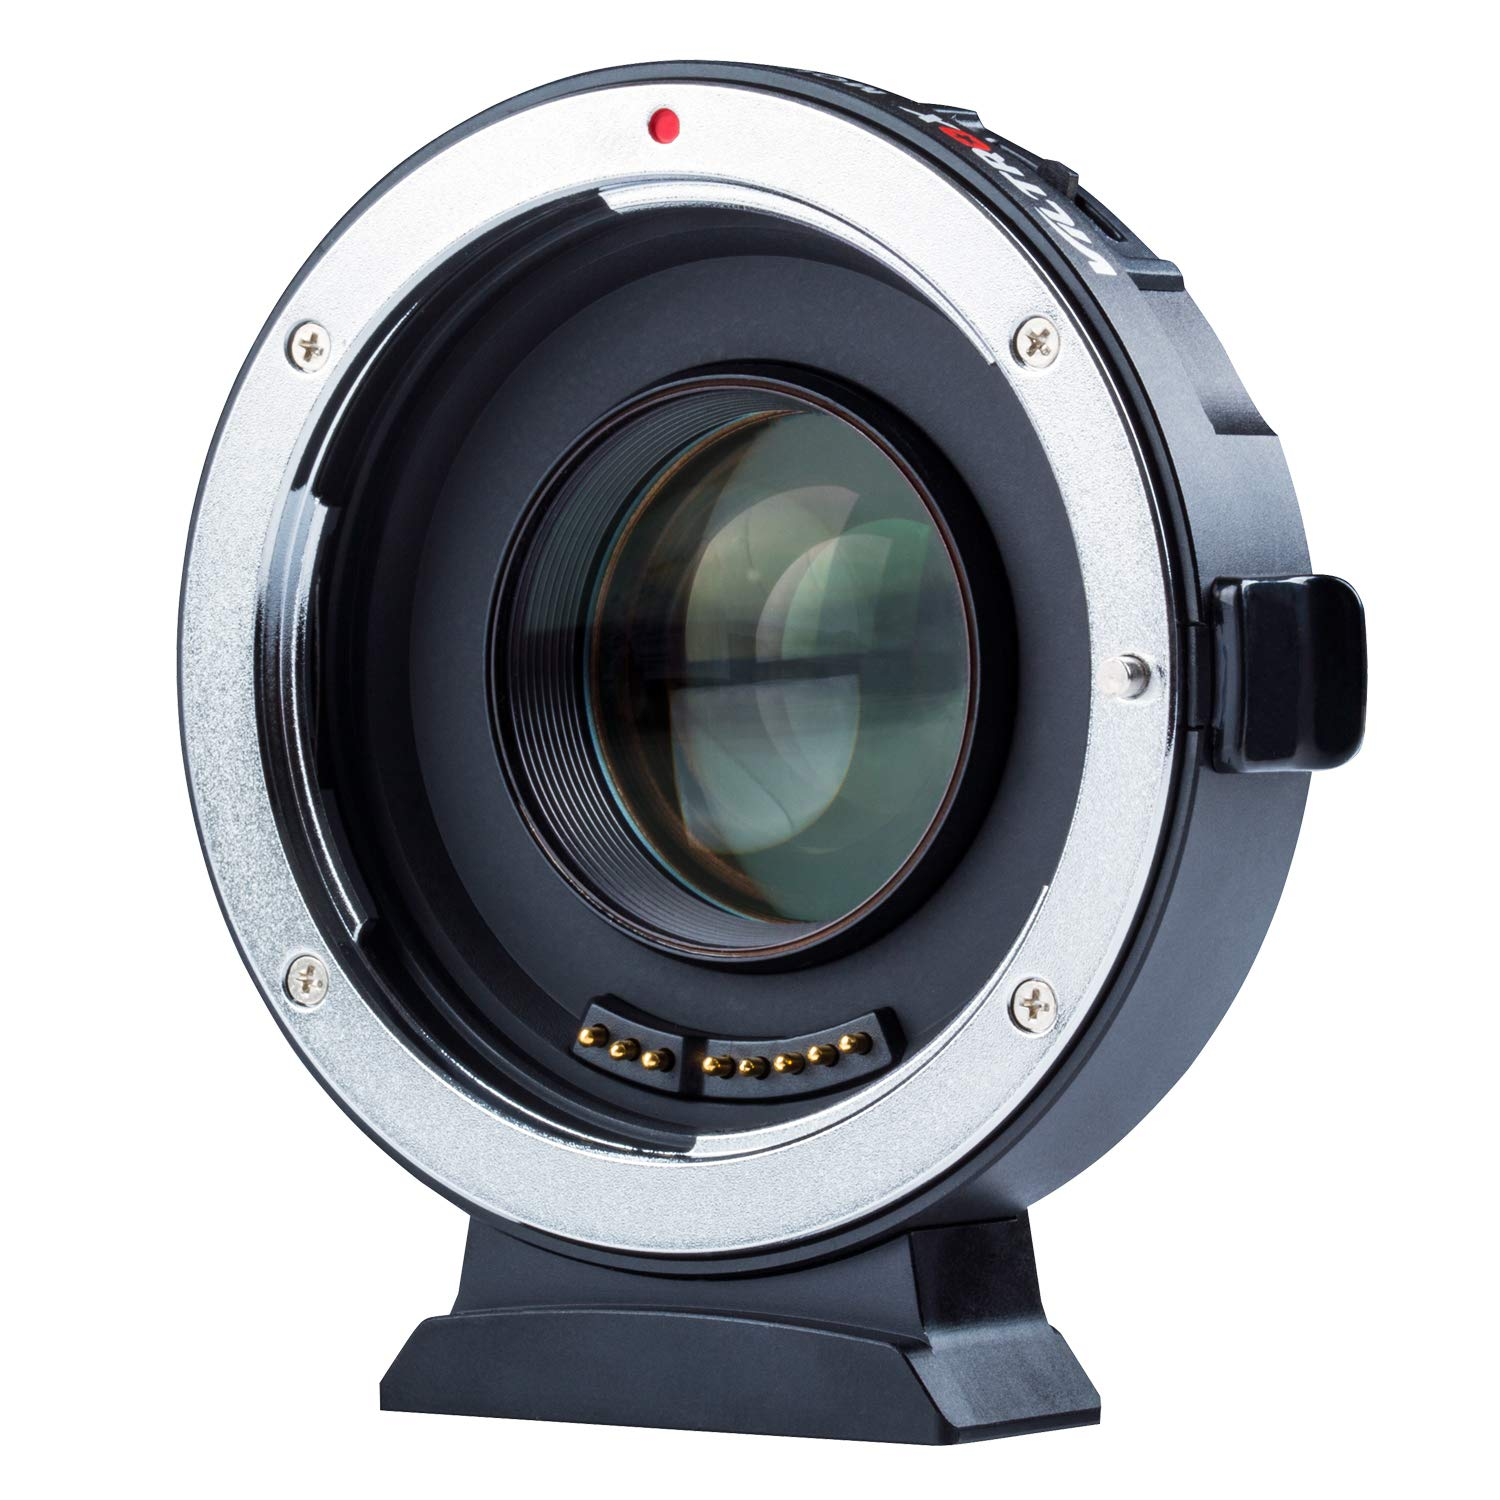 VILTROX EF-M2 II Electronic AF Auto Focus 0.71x Focal Reducer Speed Booster Lens Mount Adapter for Canon EF Mount Lens to M4/3 camera GH5 GH4 GF1 GX85 E-M5 E-M10 E-M10II E-PL3 PEN-F by VILTROX